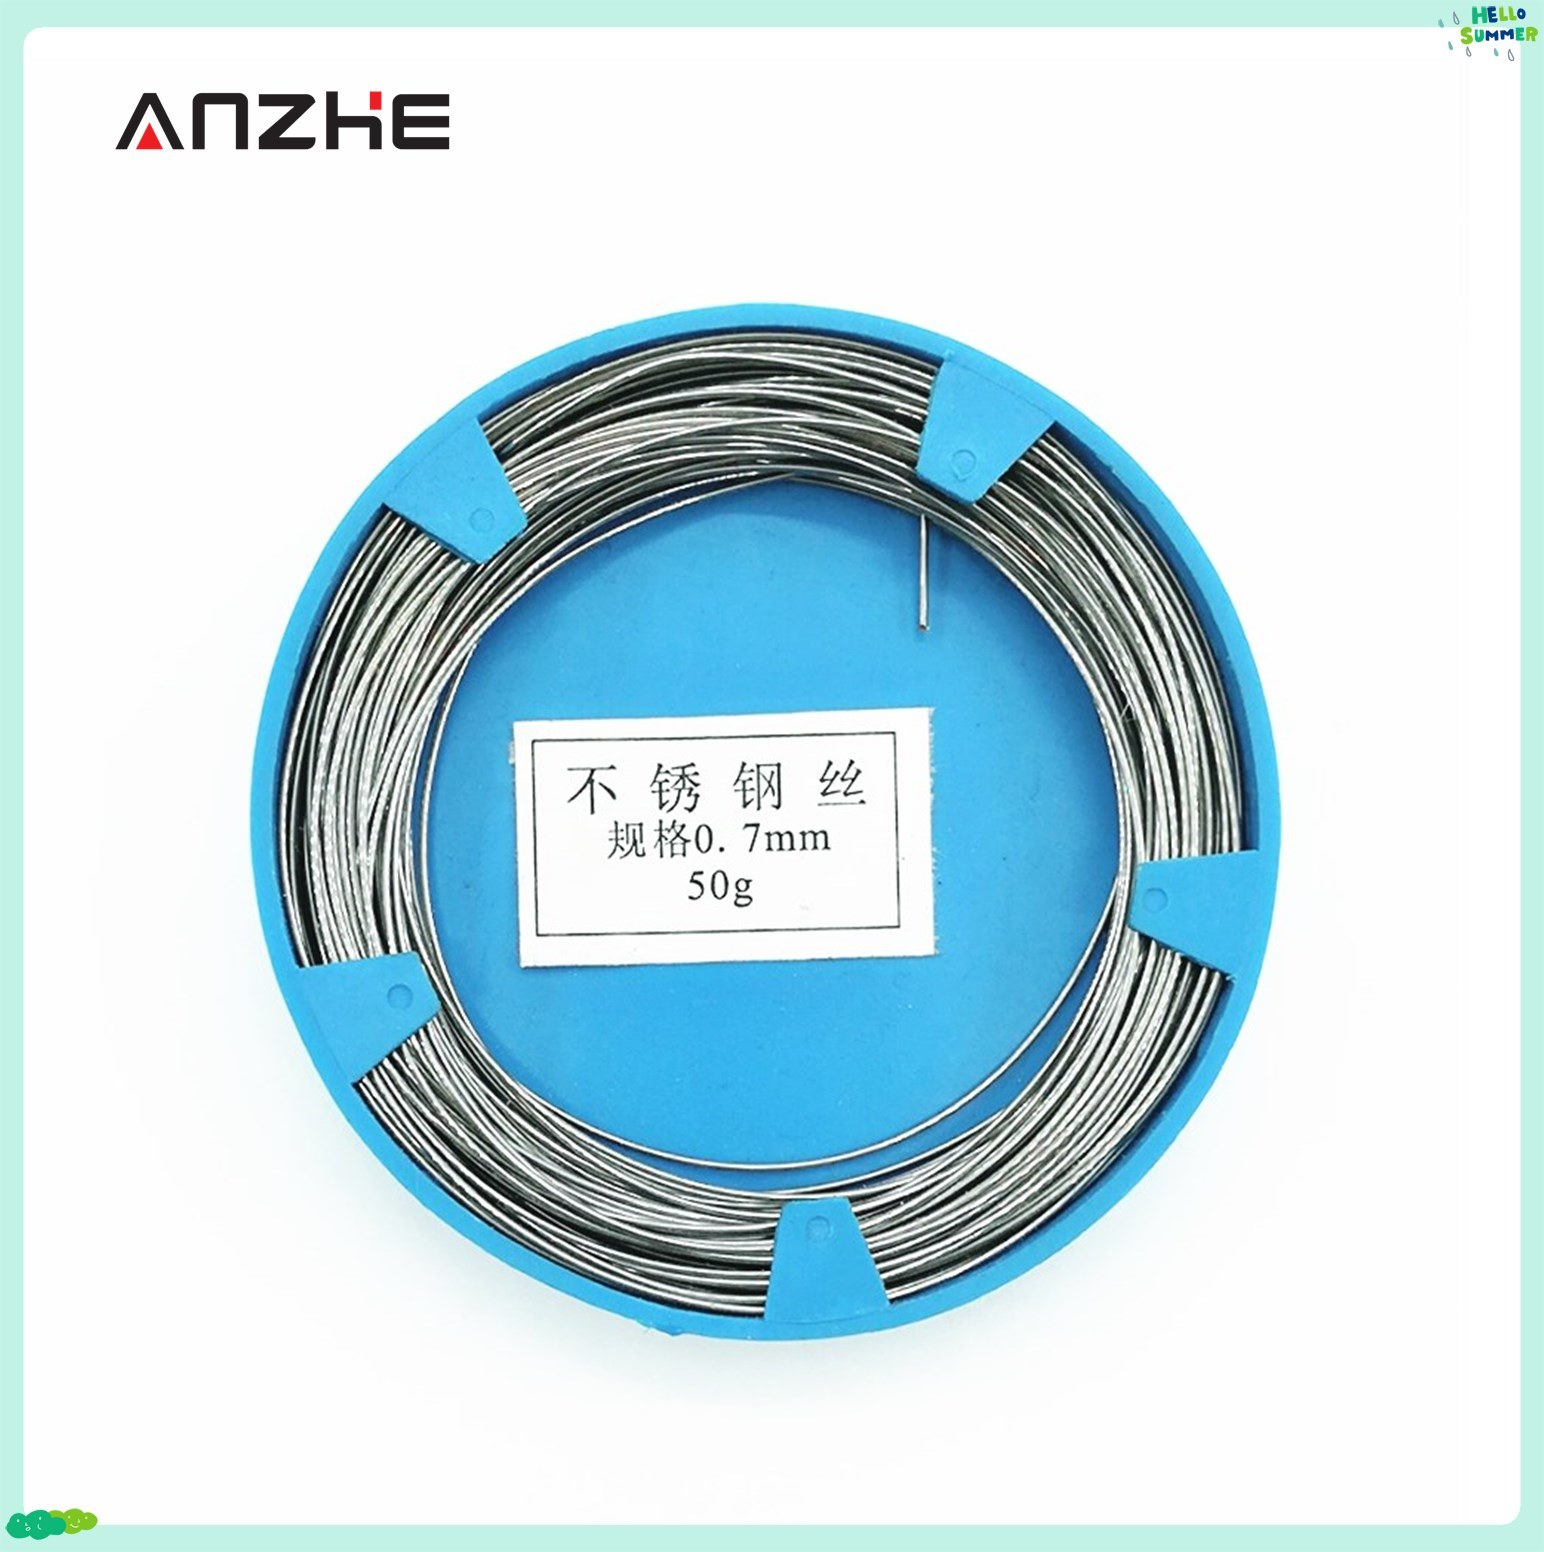 China Orthodontic Use Stainlesss Steel Dental Ligature Wire - China ...